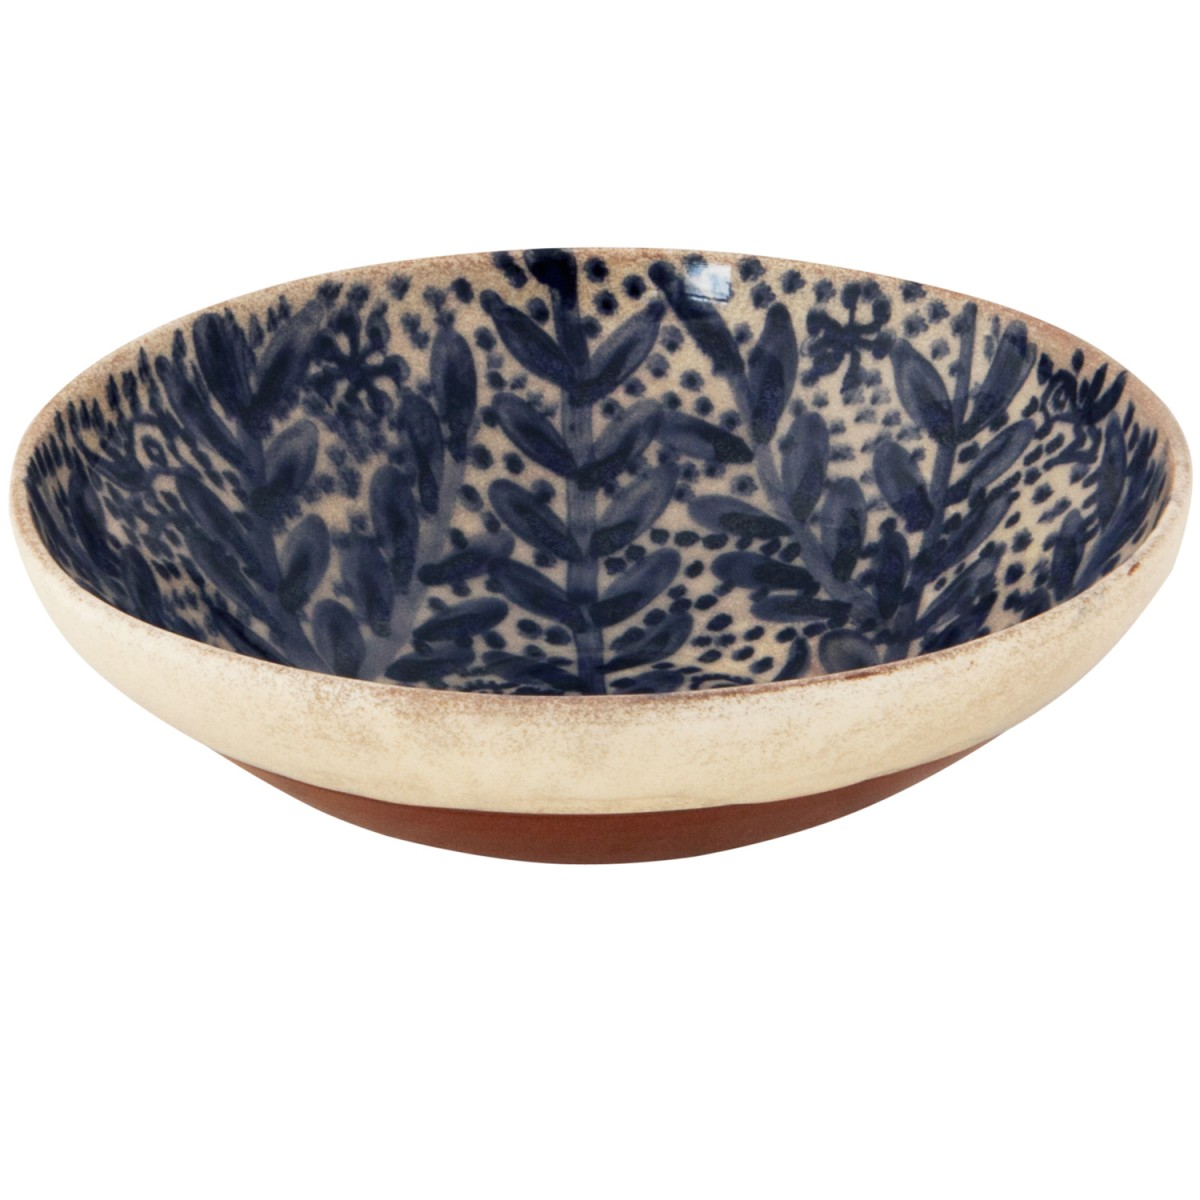 Decorative bowls for coffee tables-Dotted Flower-1